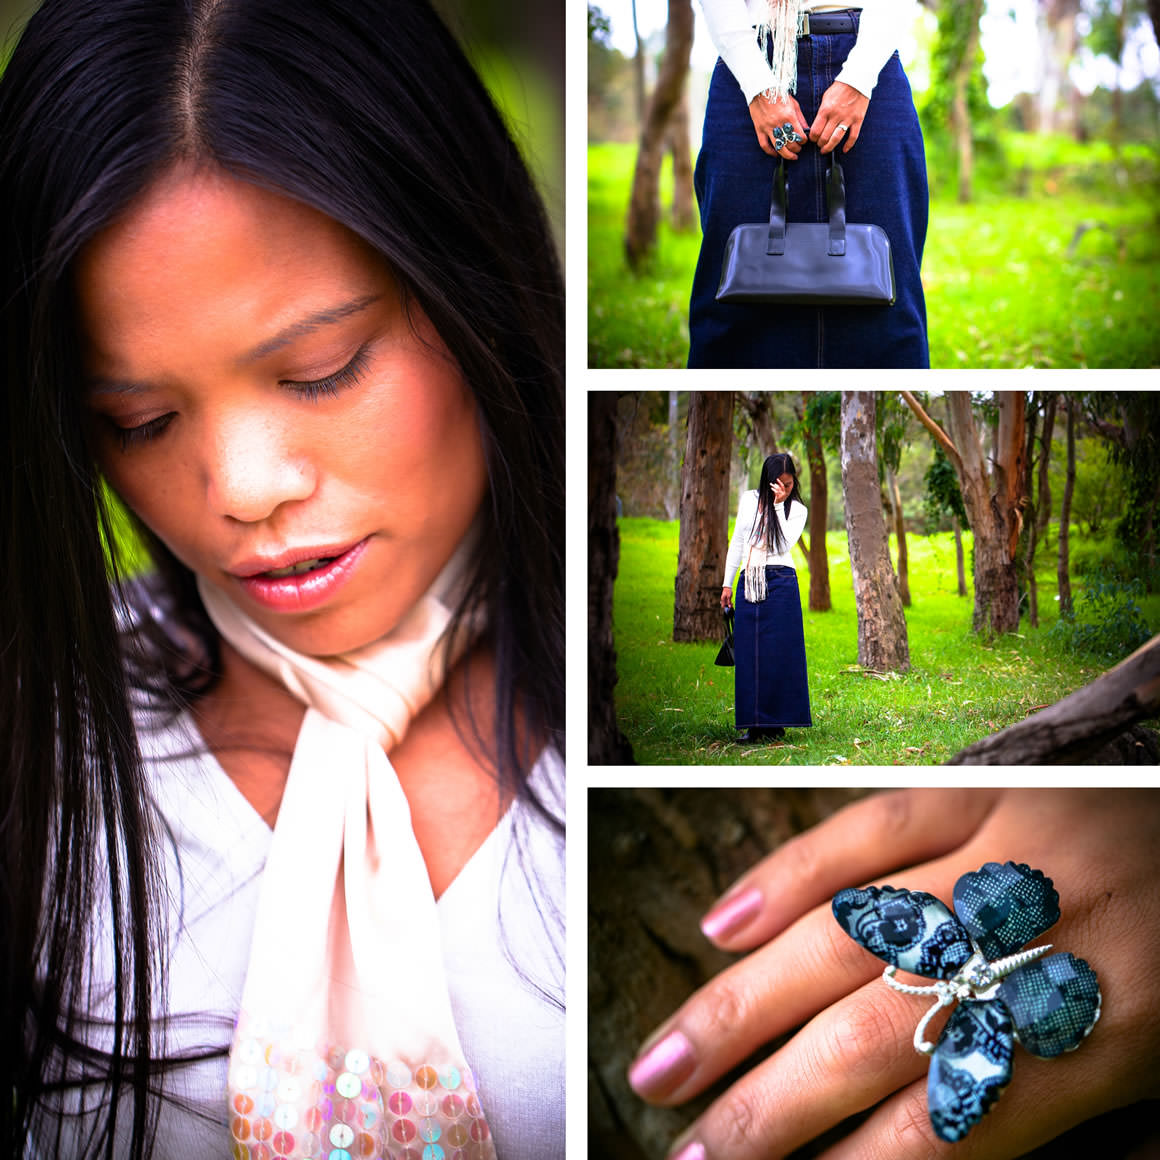 Fashion Blog in Melbourne features nature photo shoot